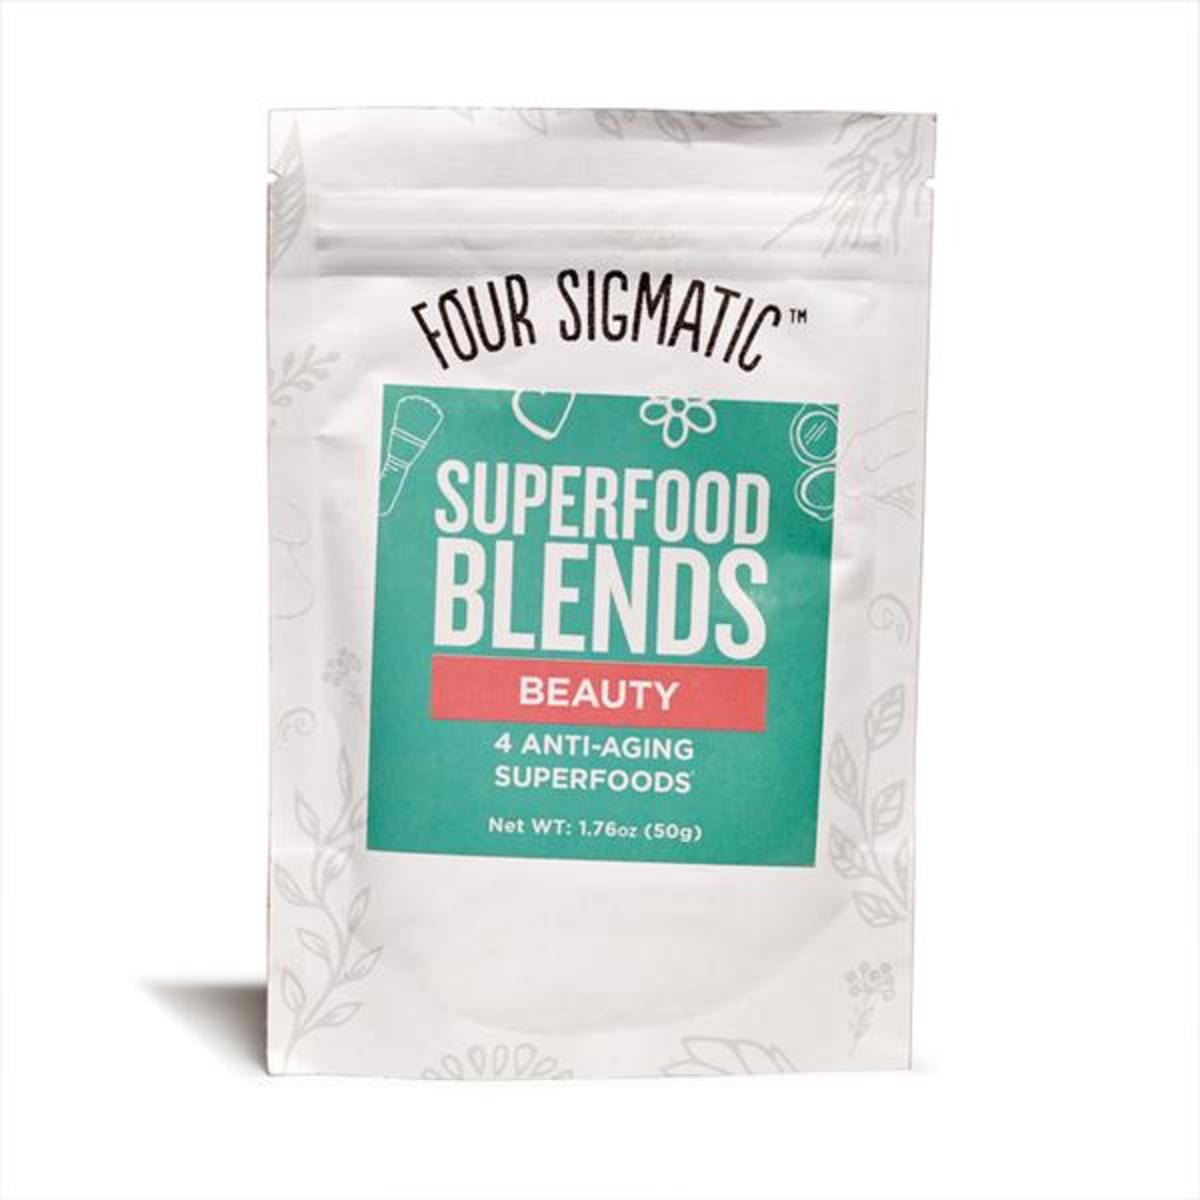 Four Sigmatic Beauty Superfood Blend